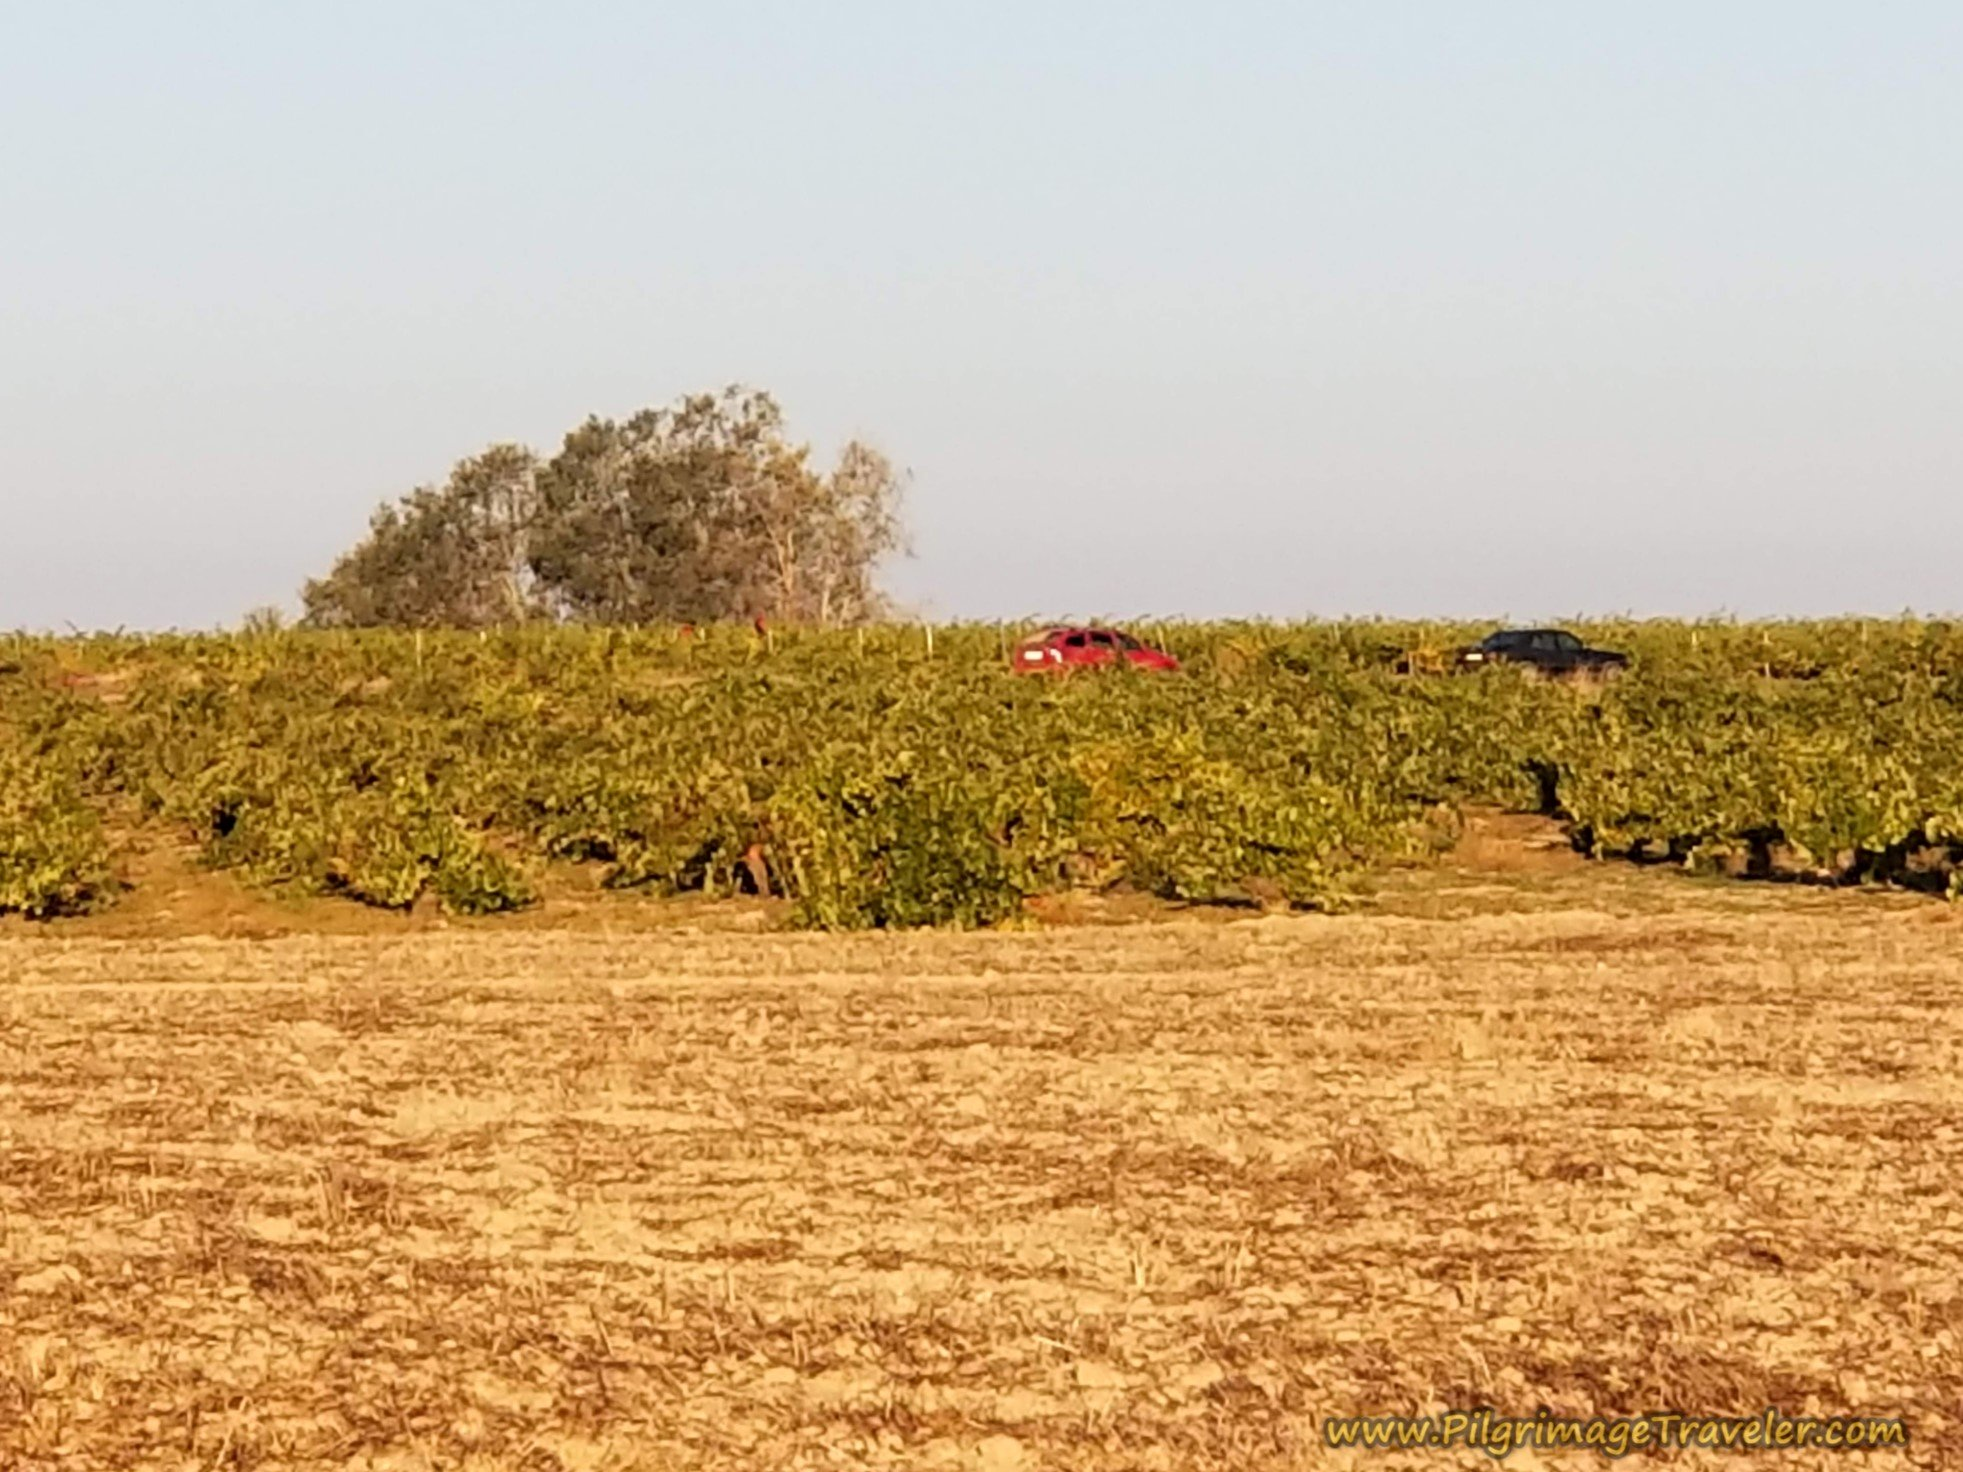 Vineyard Worker's Cars Already in the Fields